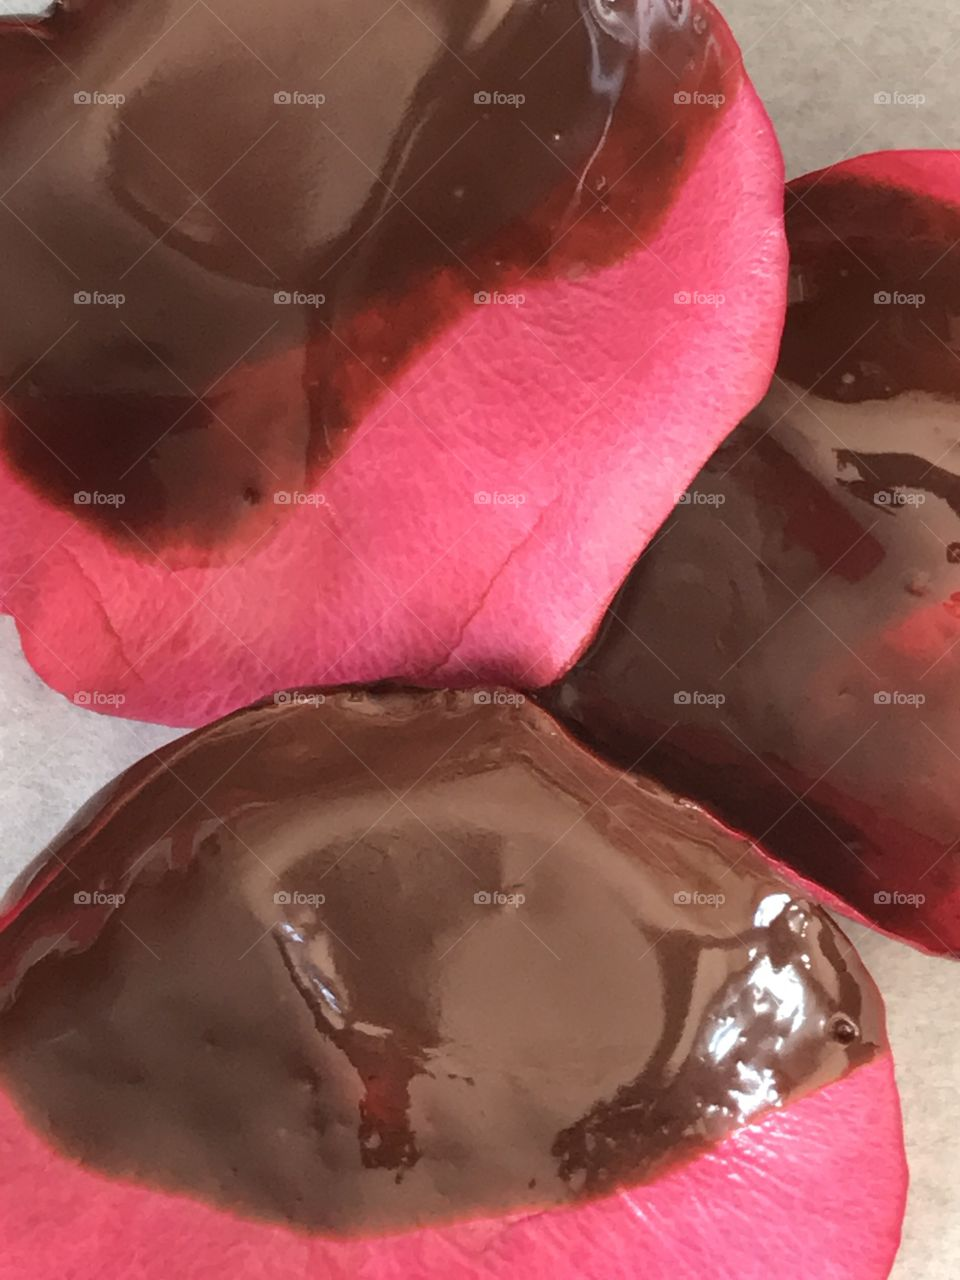 Chocolate covered rose petals